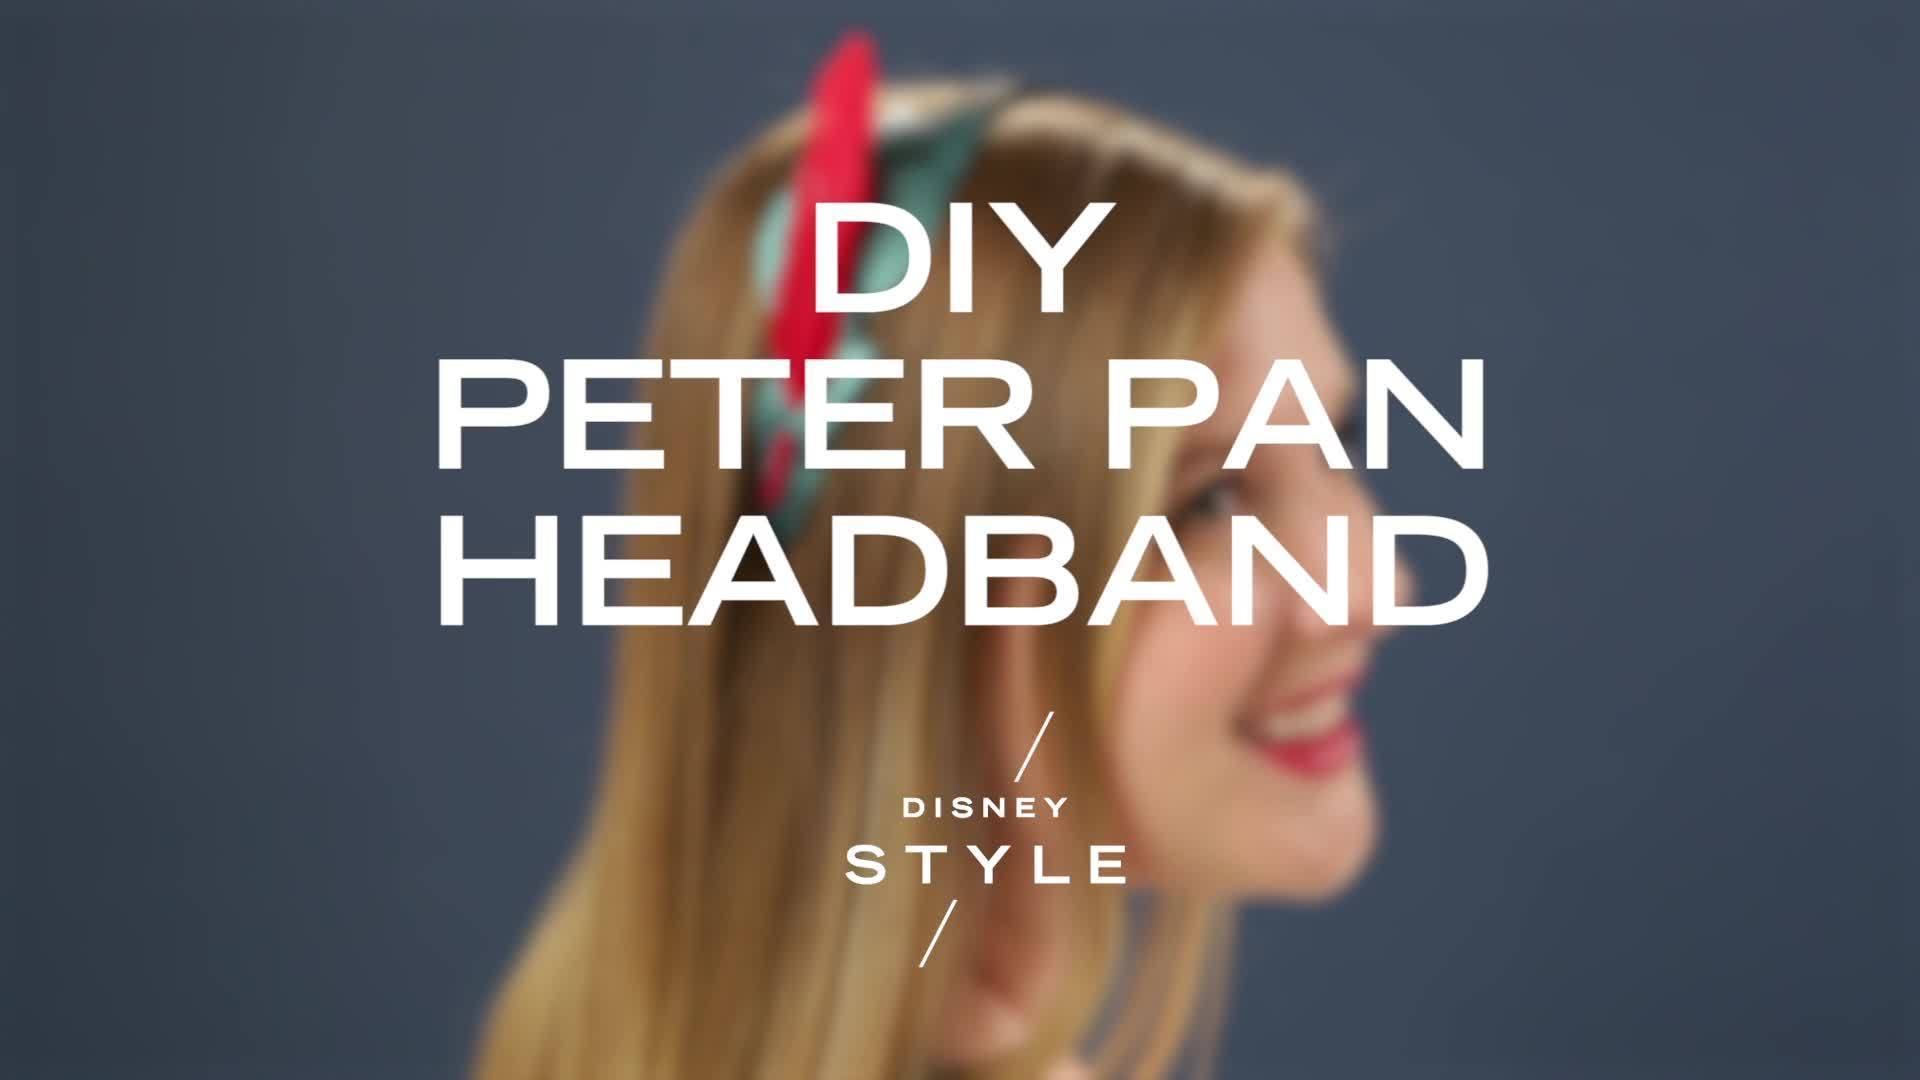 DIY Peter Pan Headband